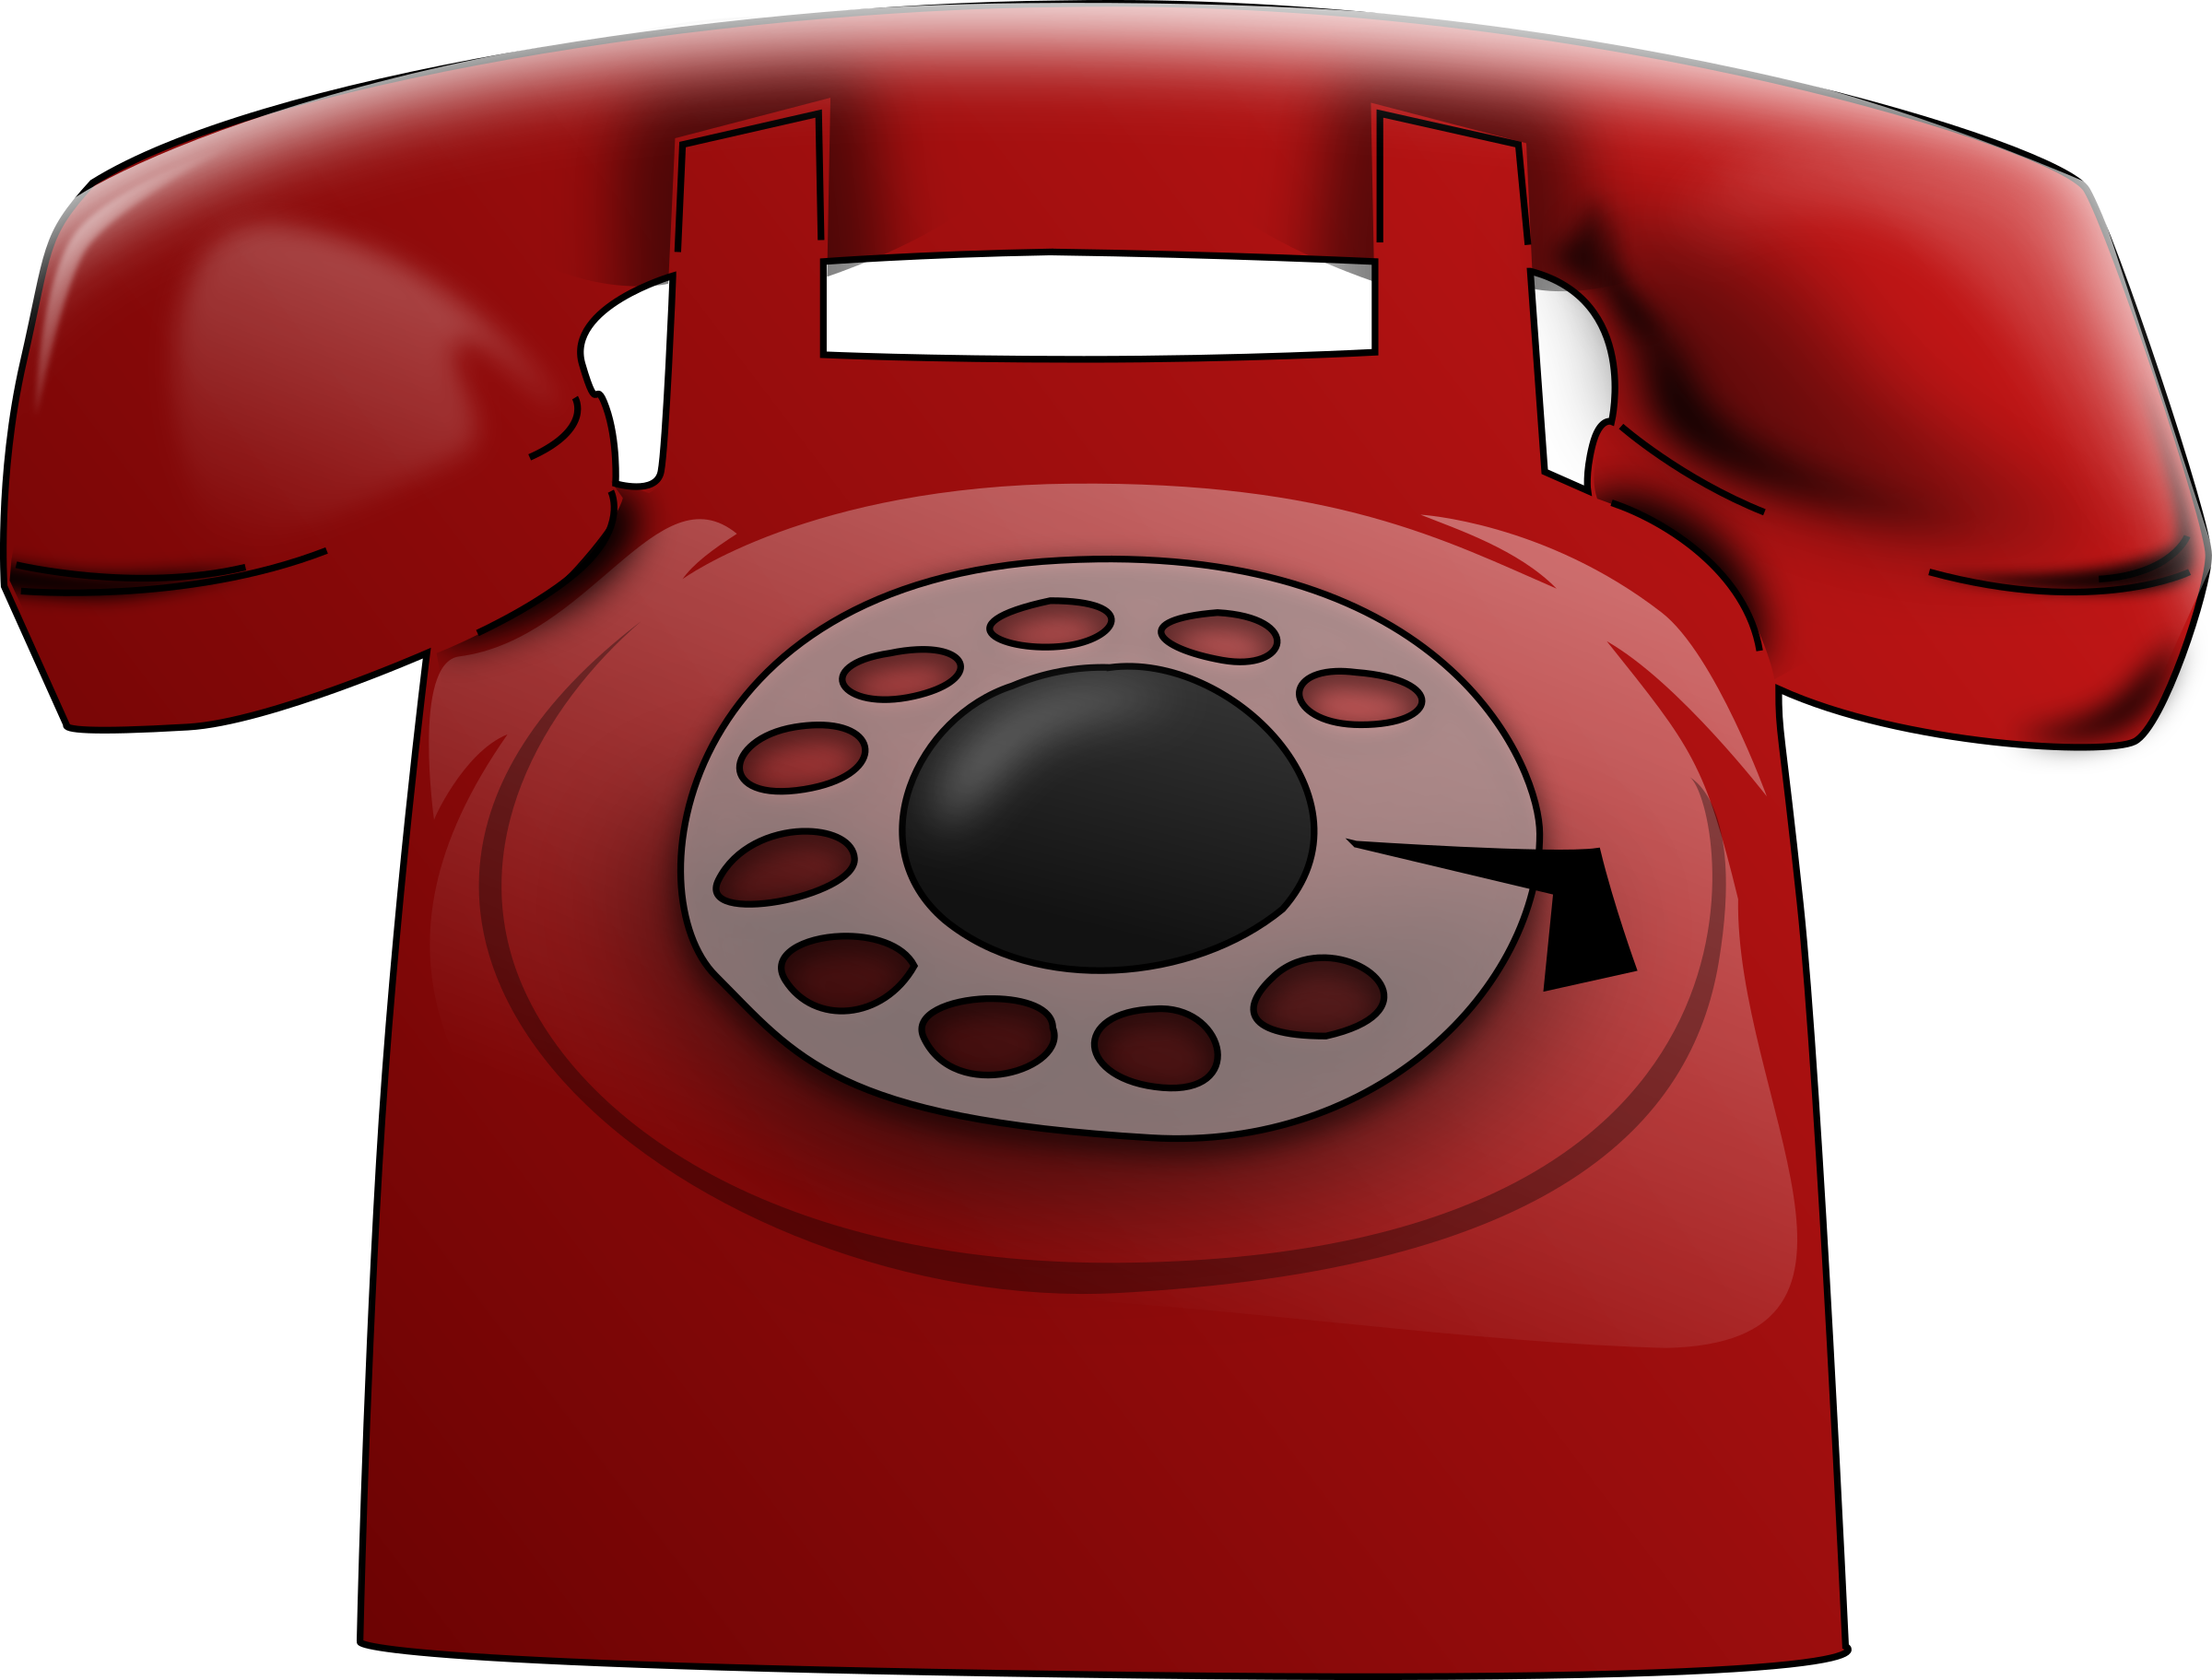 Telephone clipart rotary phone Clipart Phone Red Red Phone